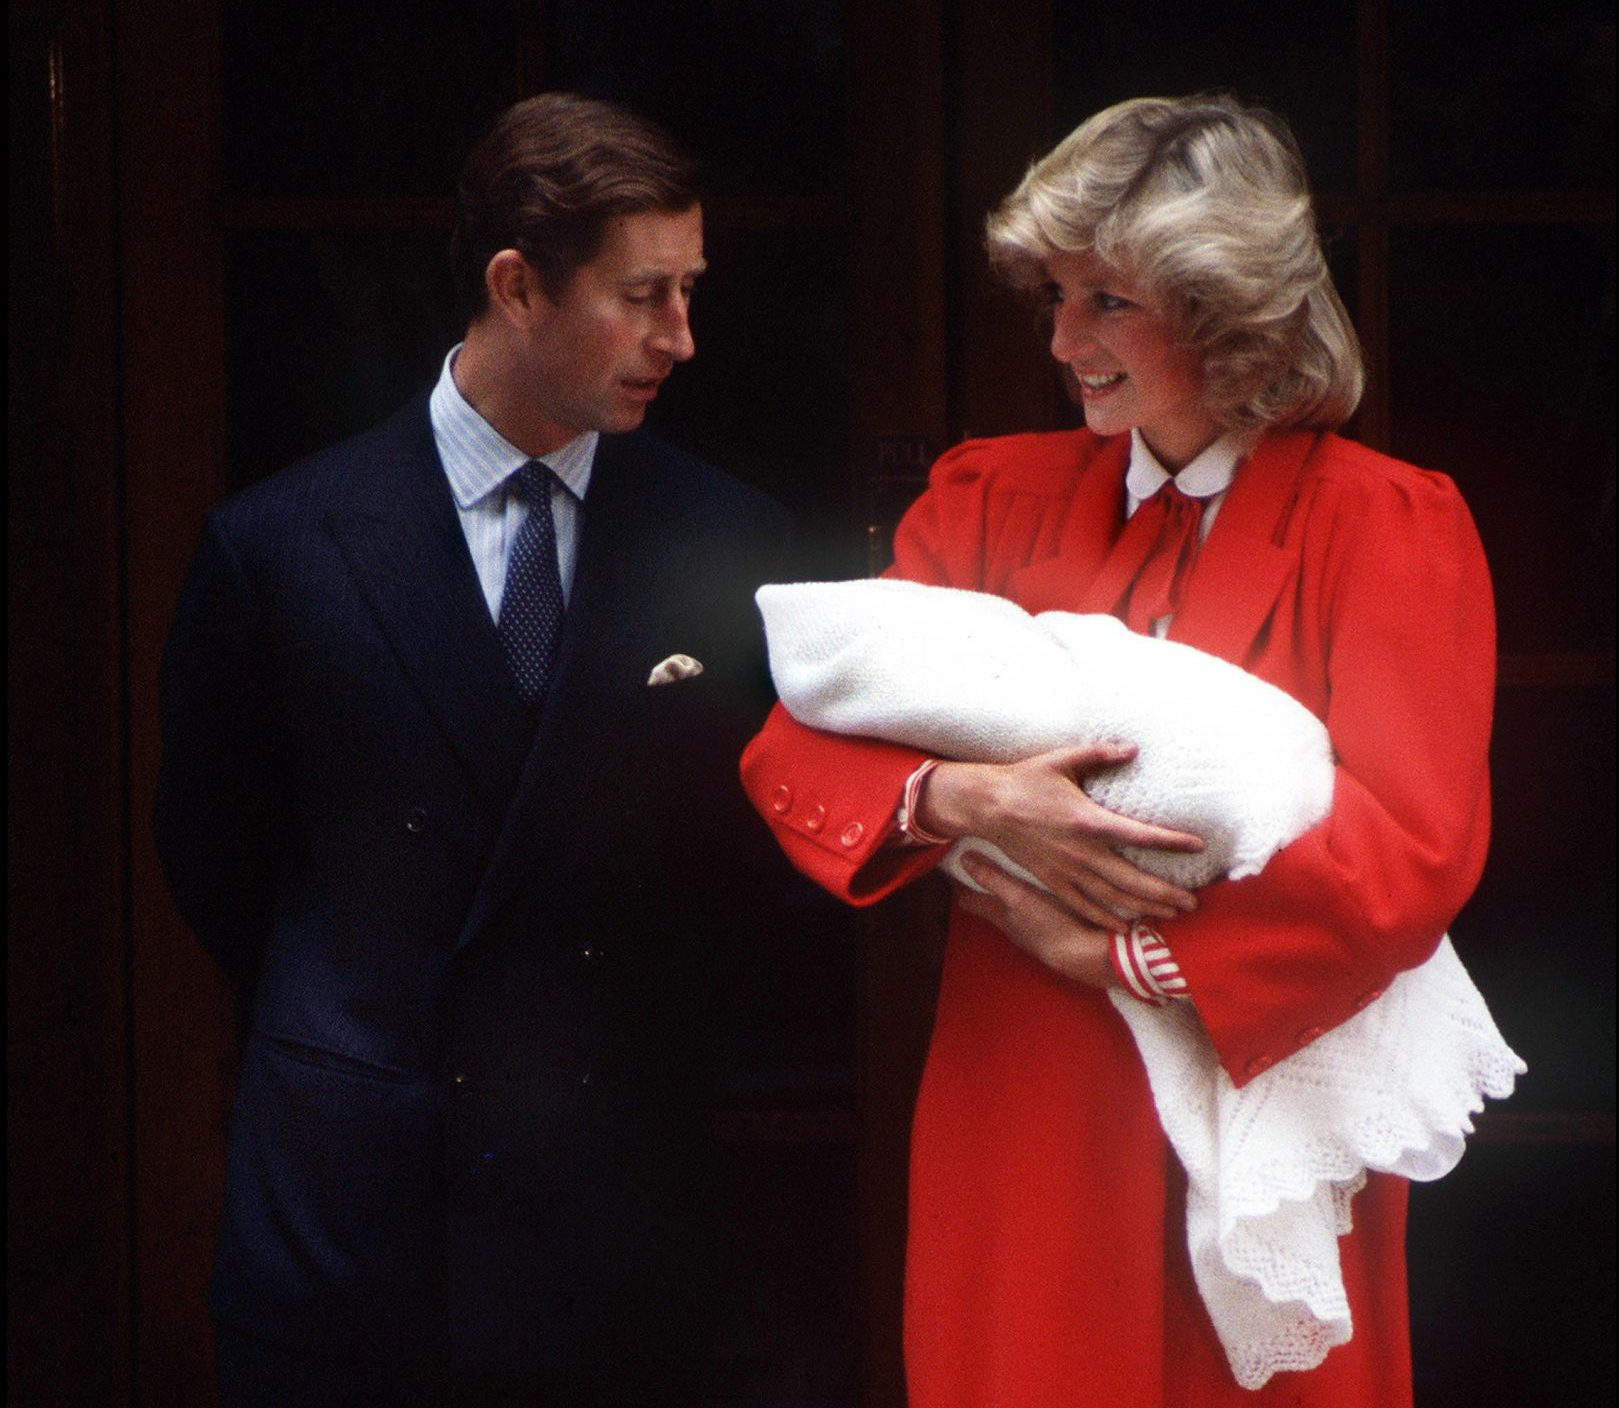 GettyImages 73426799 1 scaled e1623161663291 Princess Diana's Most Iconic Outfits